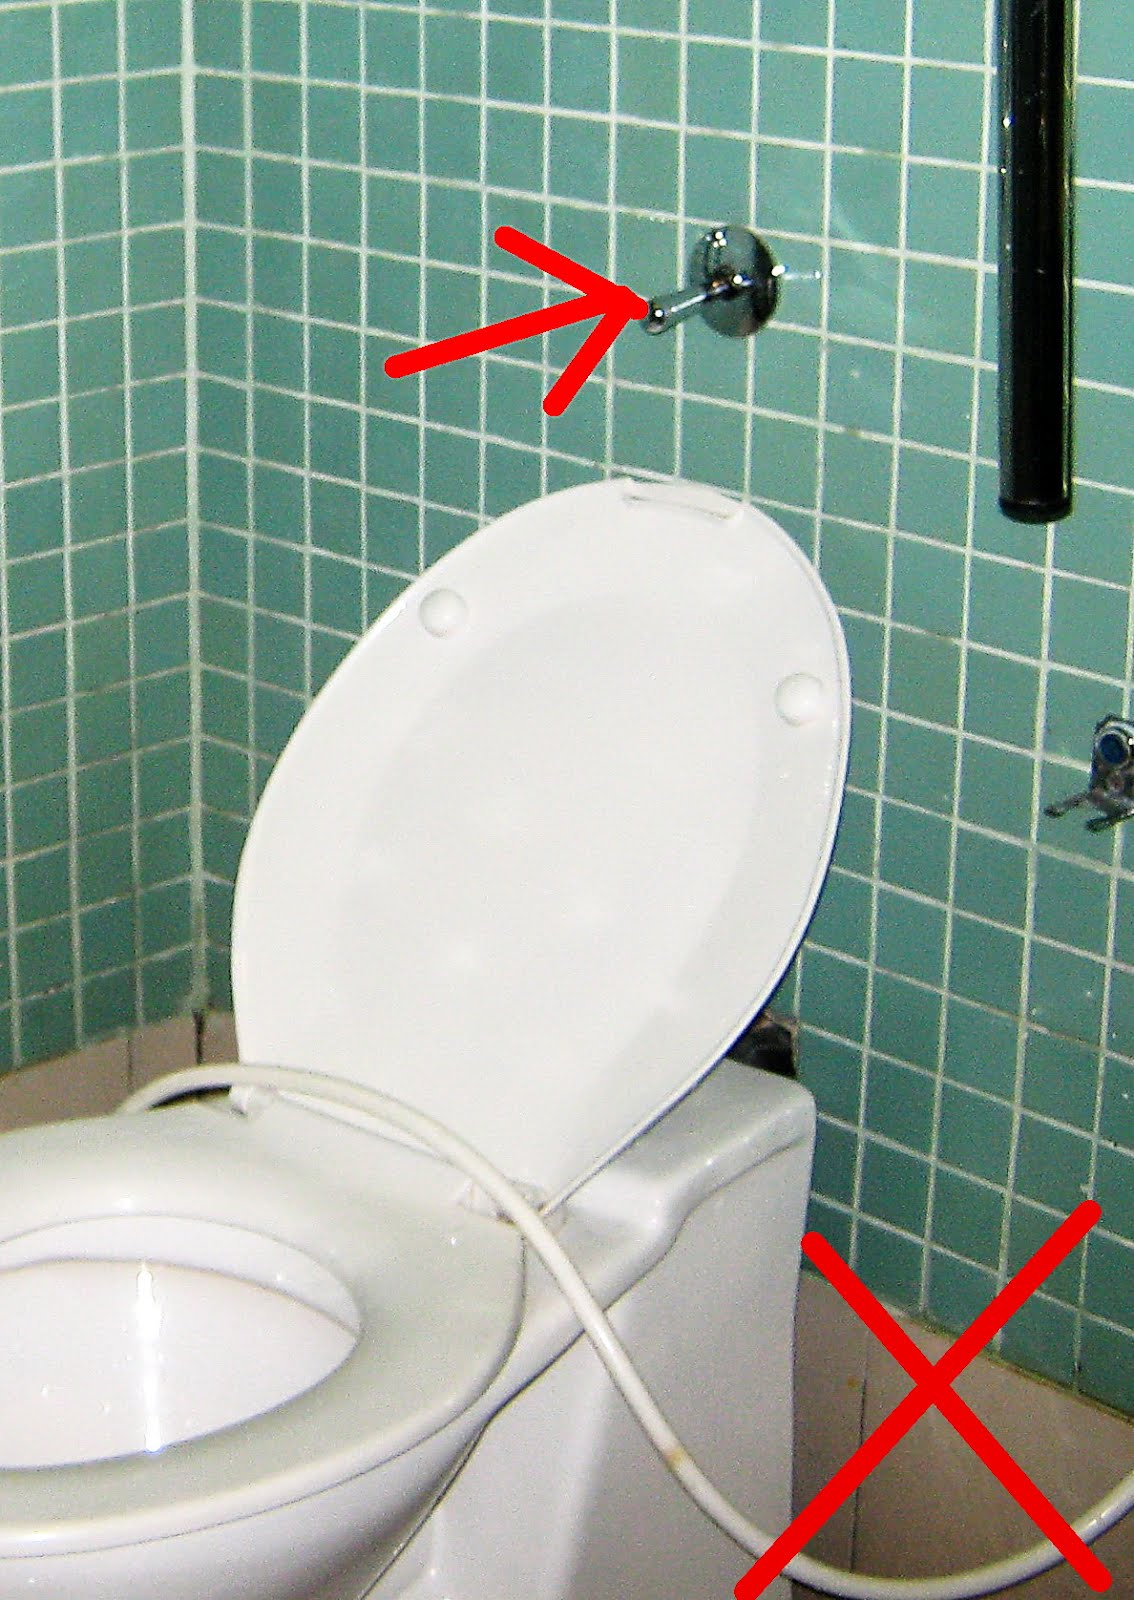 Wheelchair access penang wapenang toilet wc for - Toilet for handicapped person ...